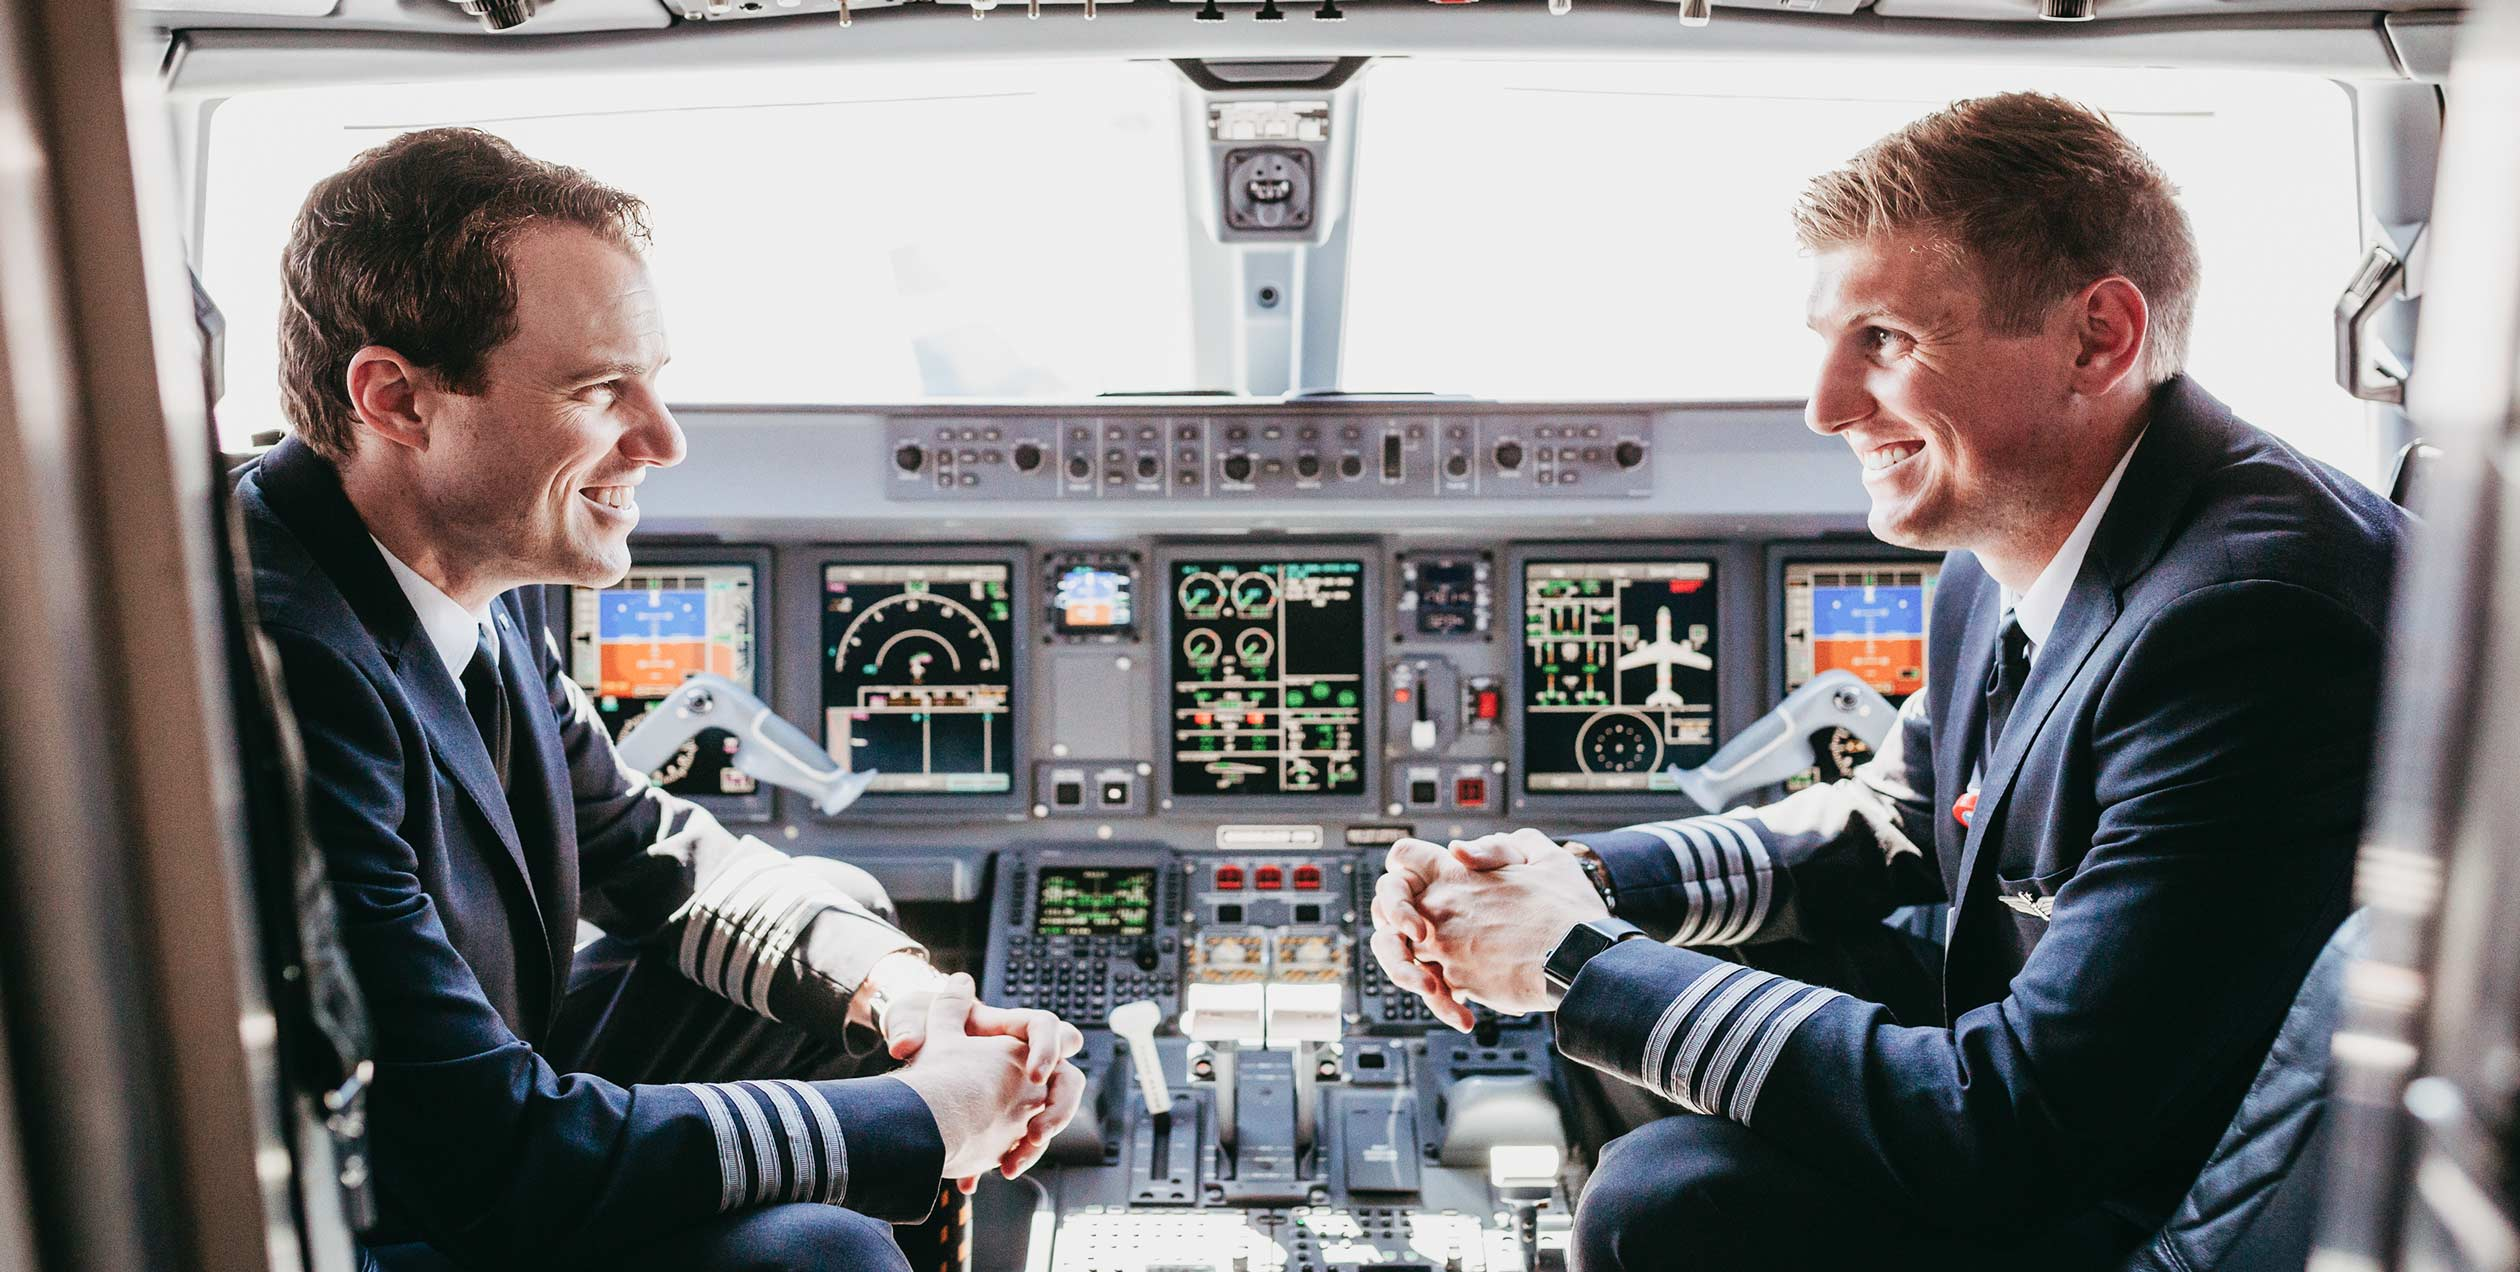 How To Become An Airline Pilot Steps Eligibility